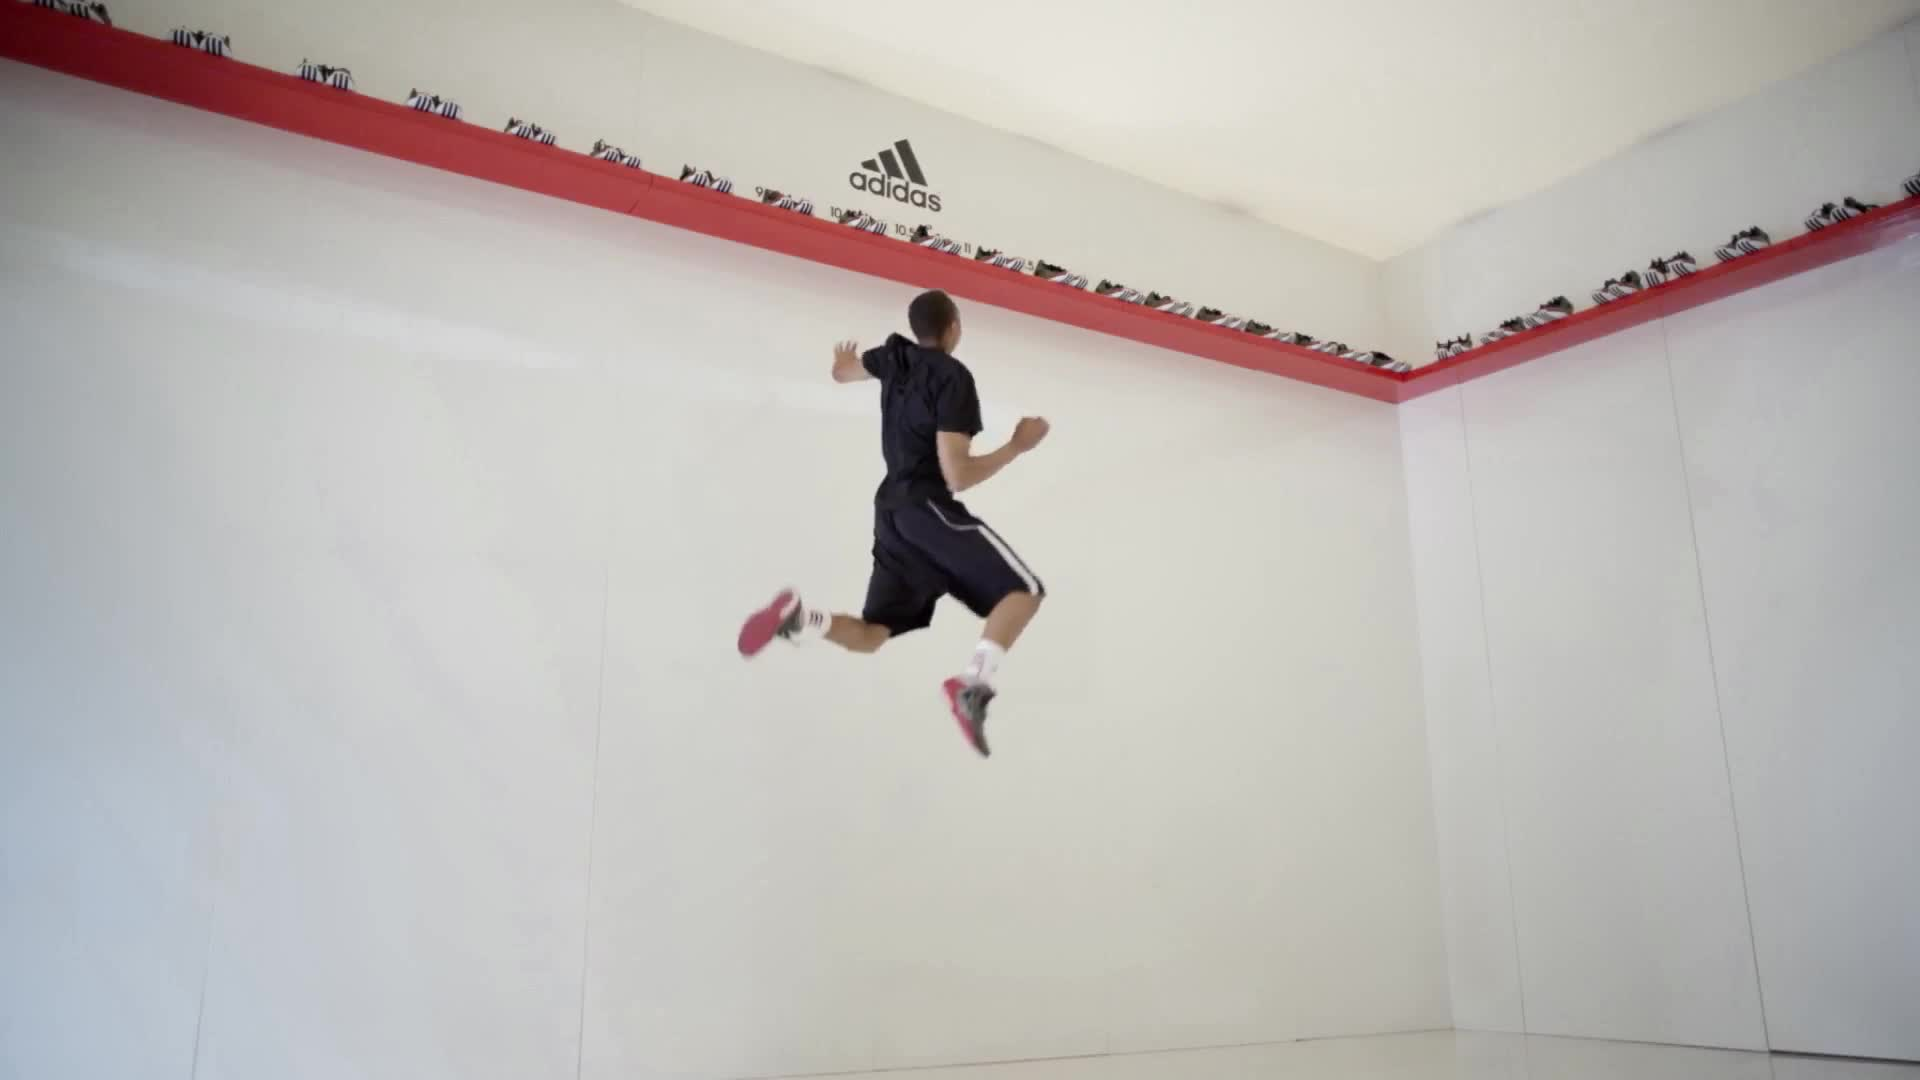 adidas-basketball-apparel-jump-with-derrick-rose-in-london-600-38057